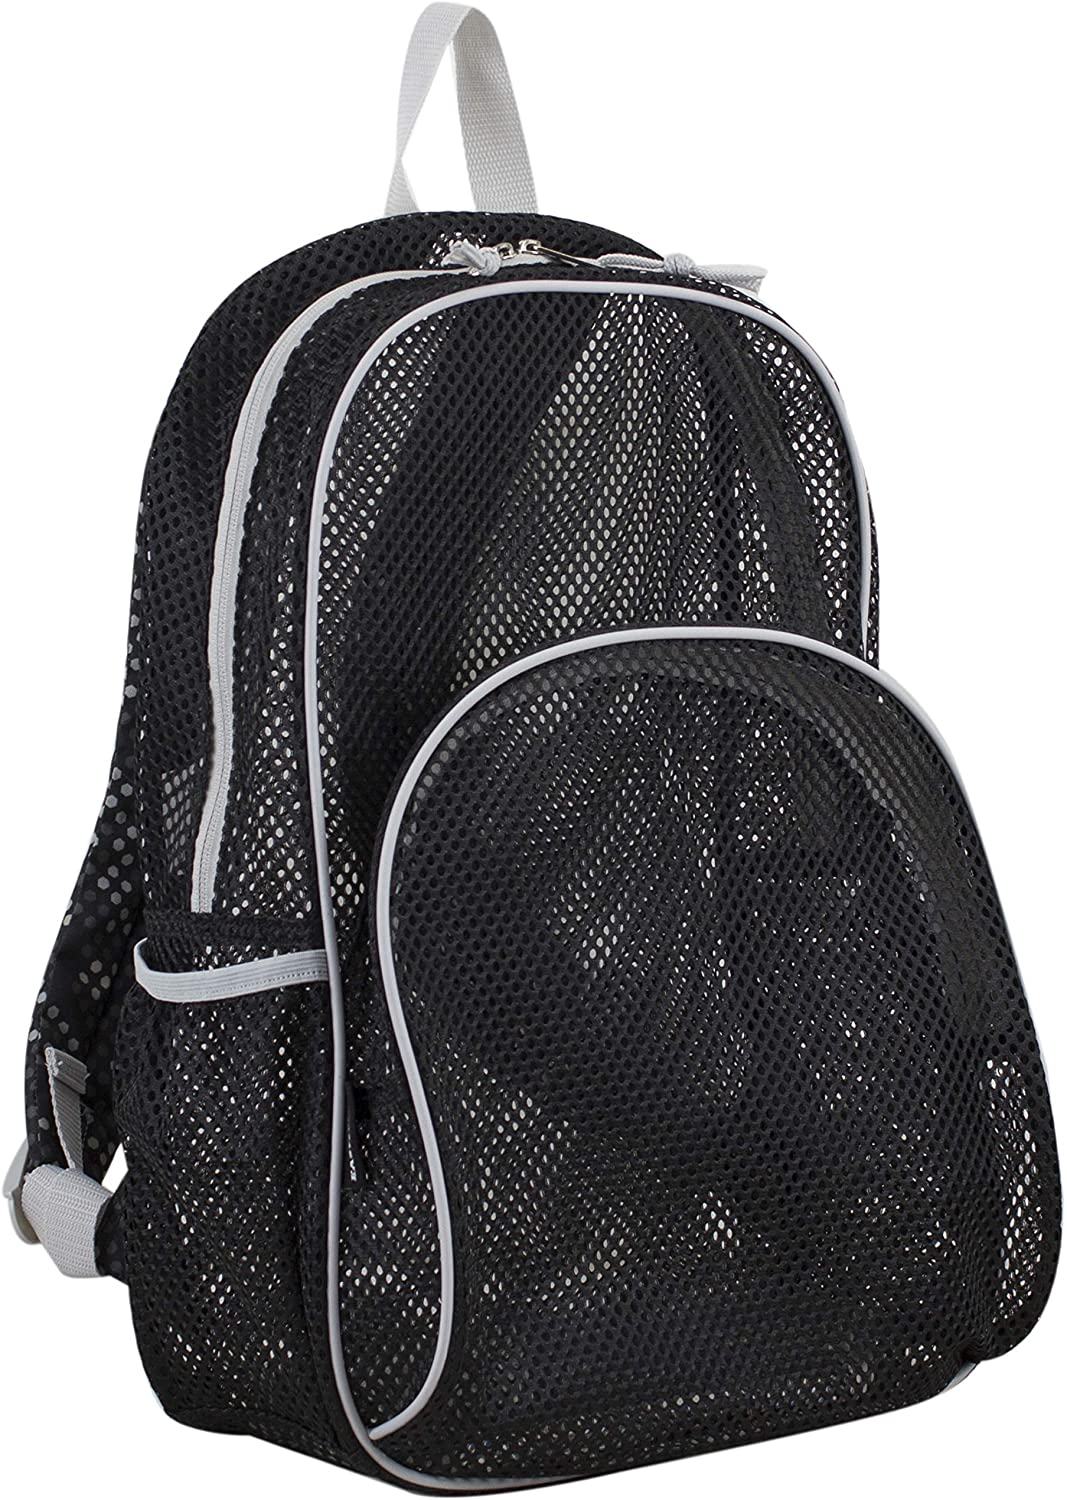 Eastsport Mesh Backpack With Padded Shoulder Straps, Black Mesh/Gray/Hexagon Dotted Print Straps